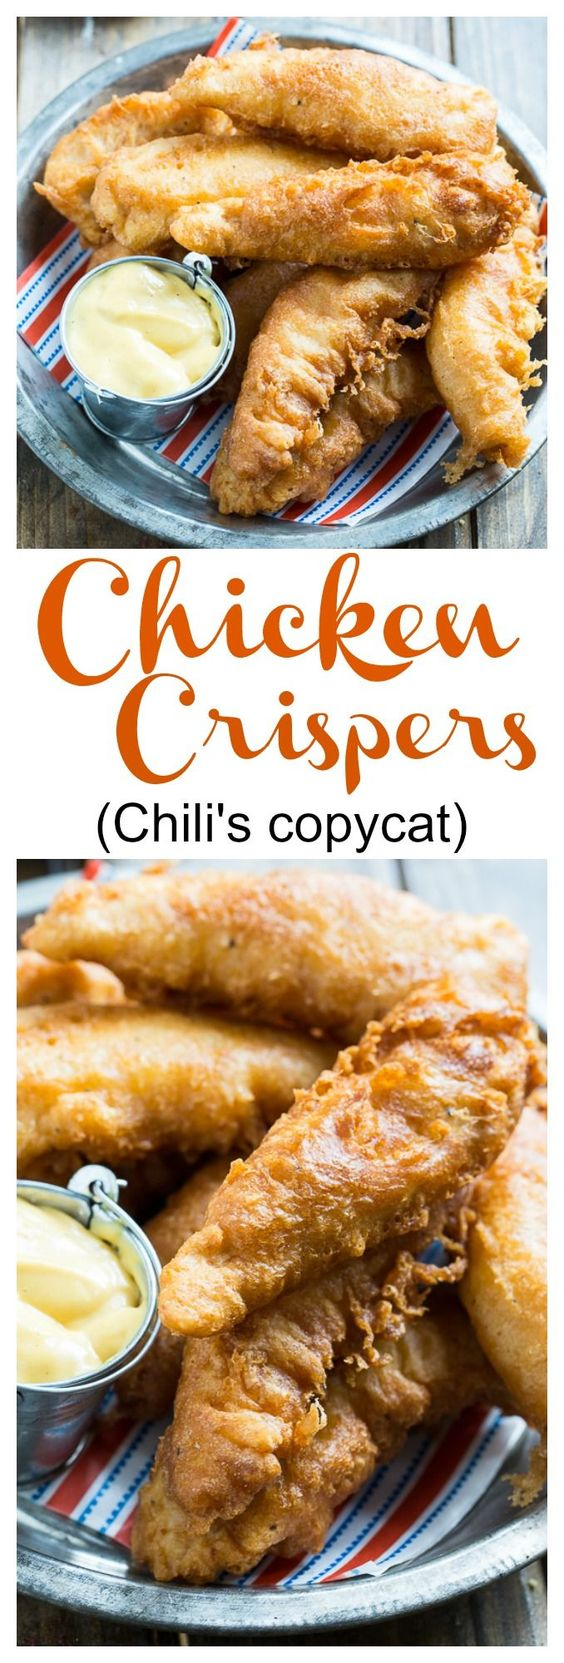 Chicken Crispers - Chili's copycat : Spicy Southern Kitchen